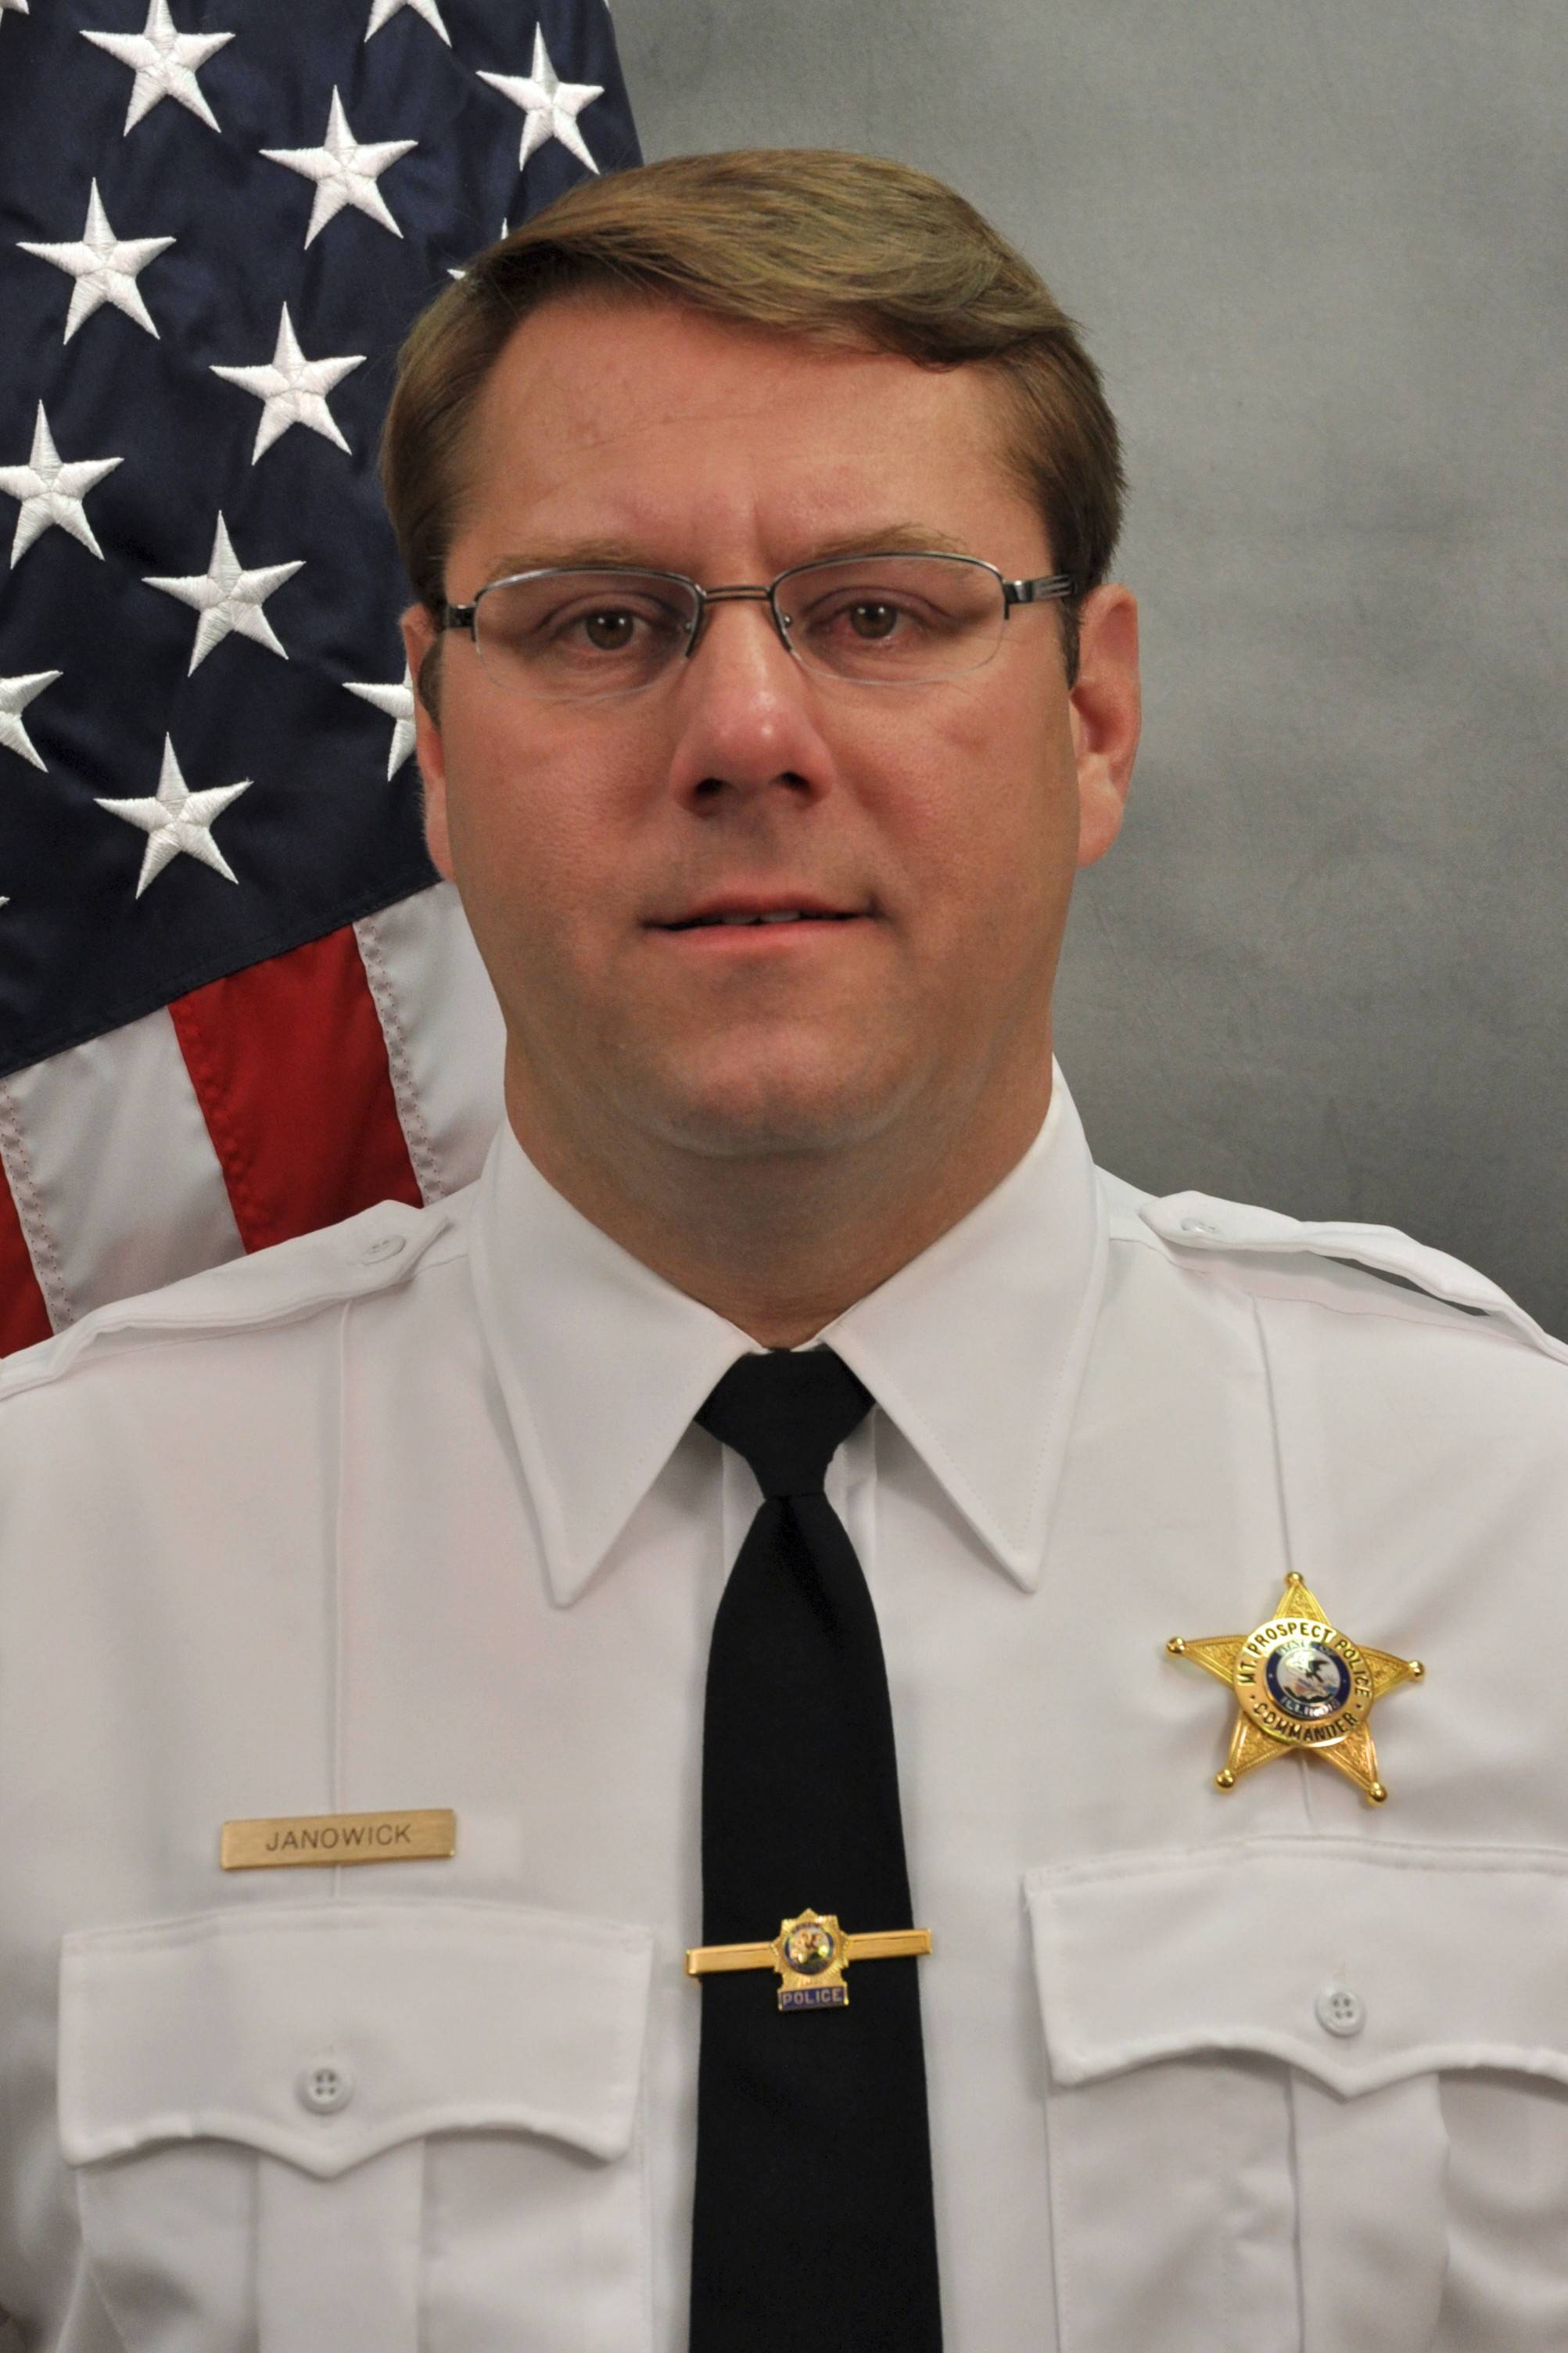 After 2 months on leave, Mount Prospect chief agrees to retire